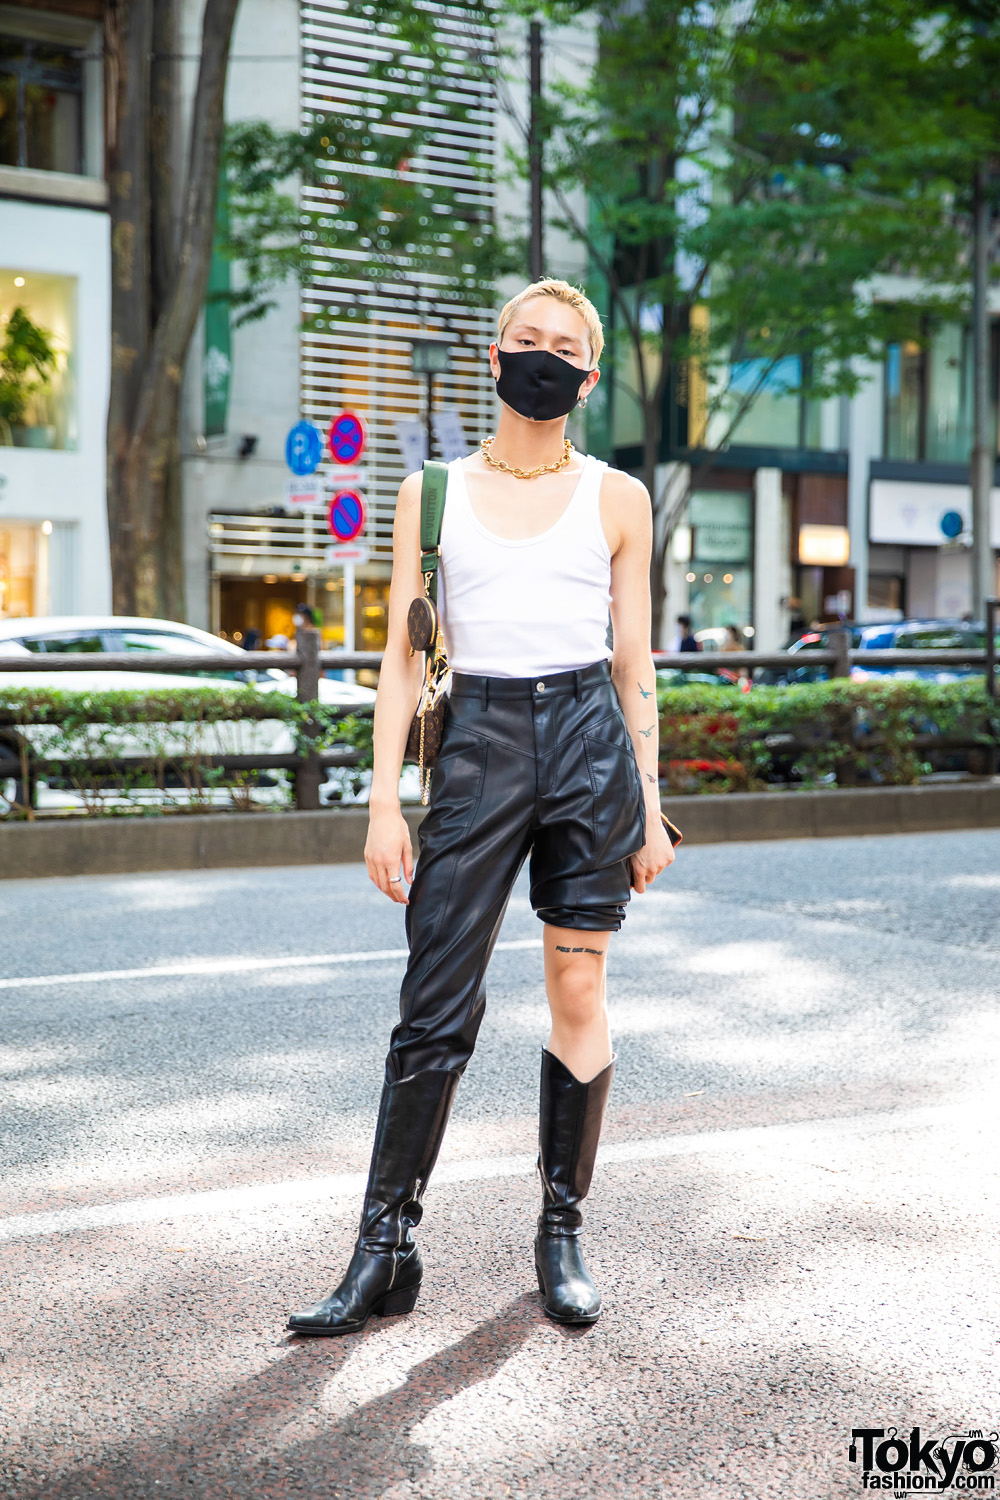 Tokyo Street Style w/ Bleached Hair, Tattoos, Single Hoop Earring, Tank Top, Y Project Leather Half Pants, Louis Vuitton Multi Pochette Bag & Vintage Cowboy Boots